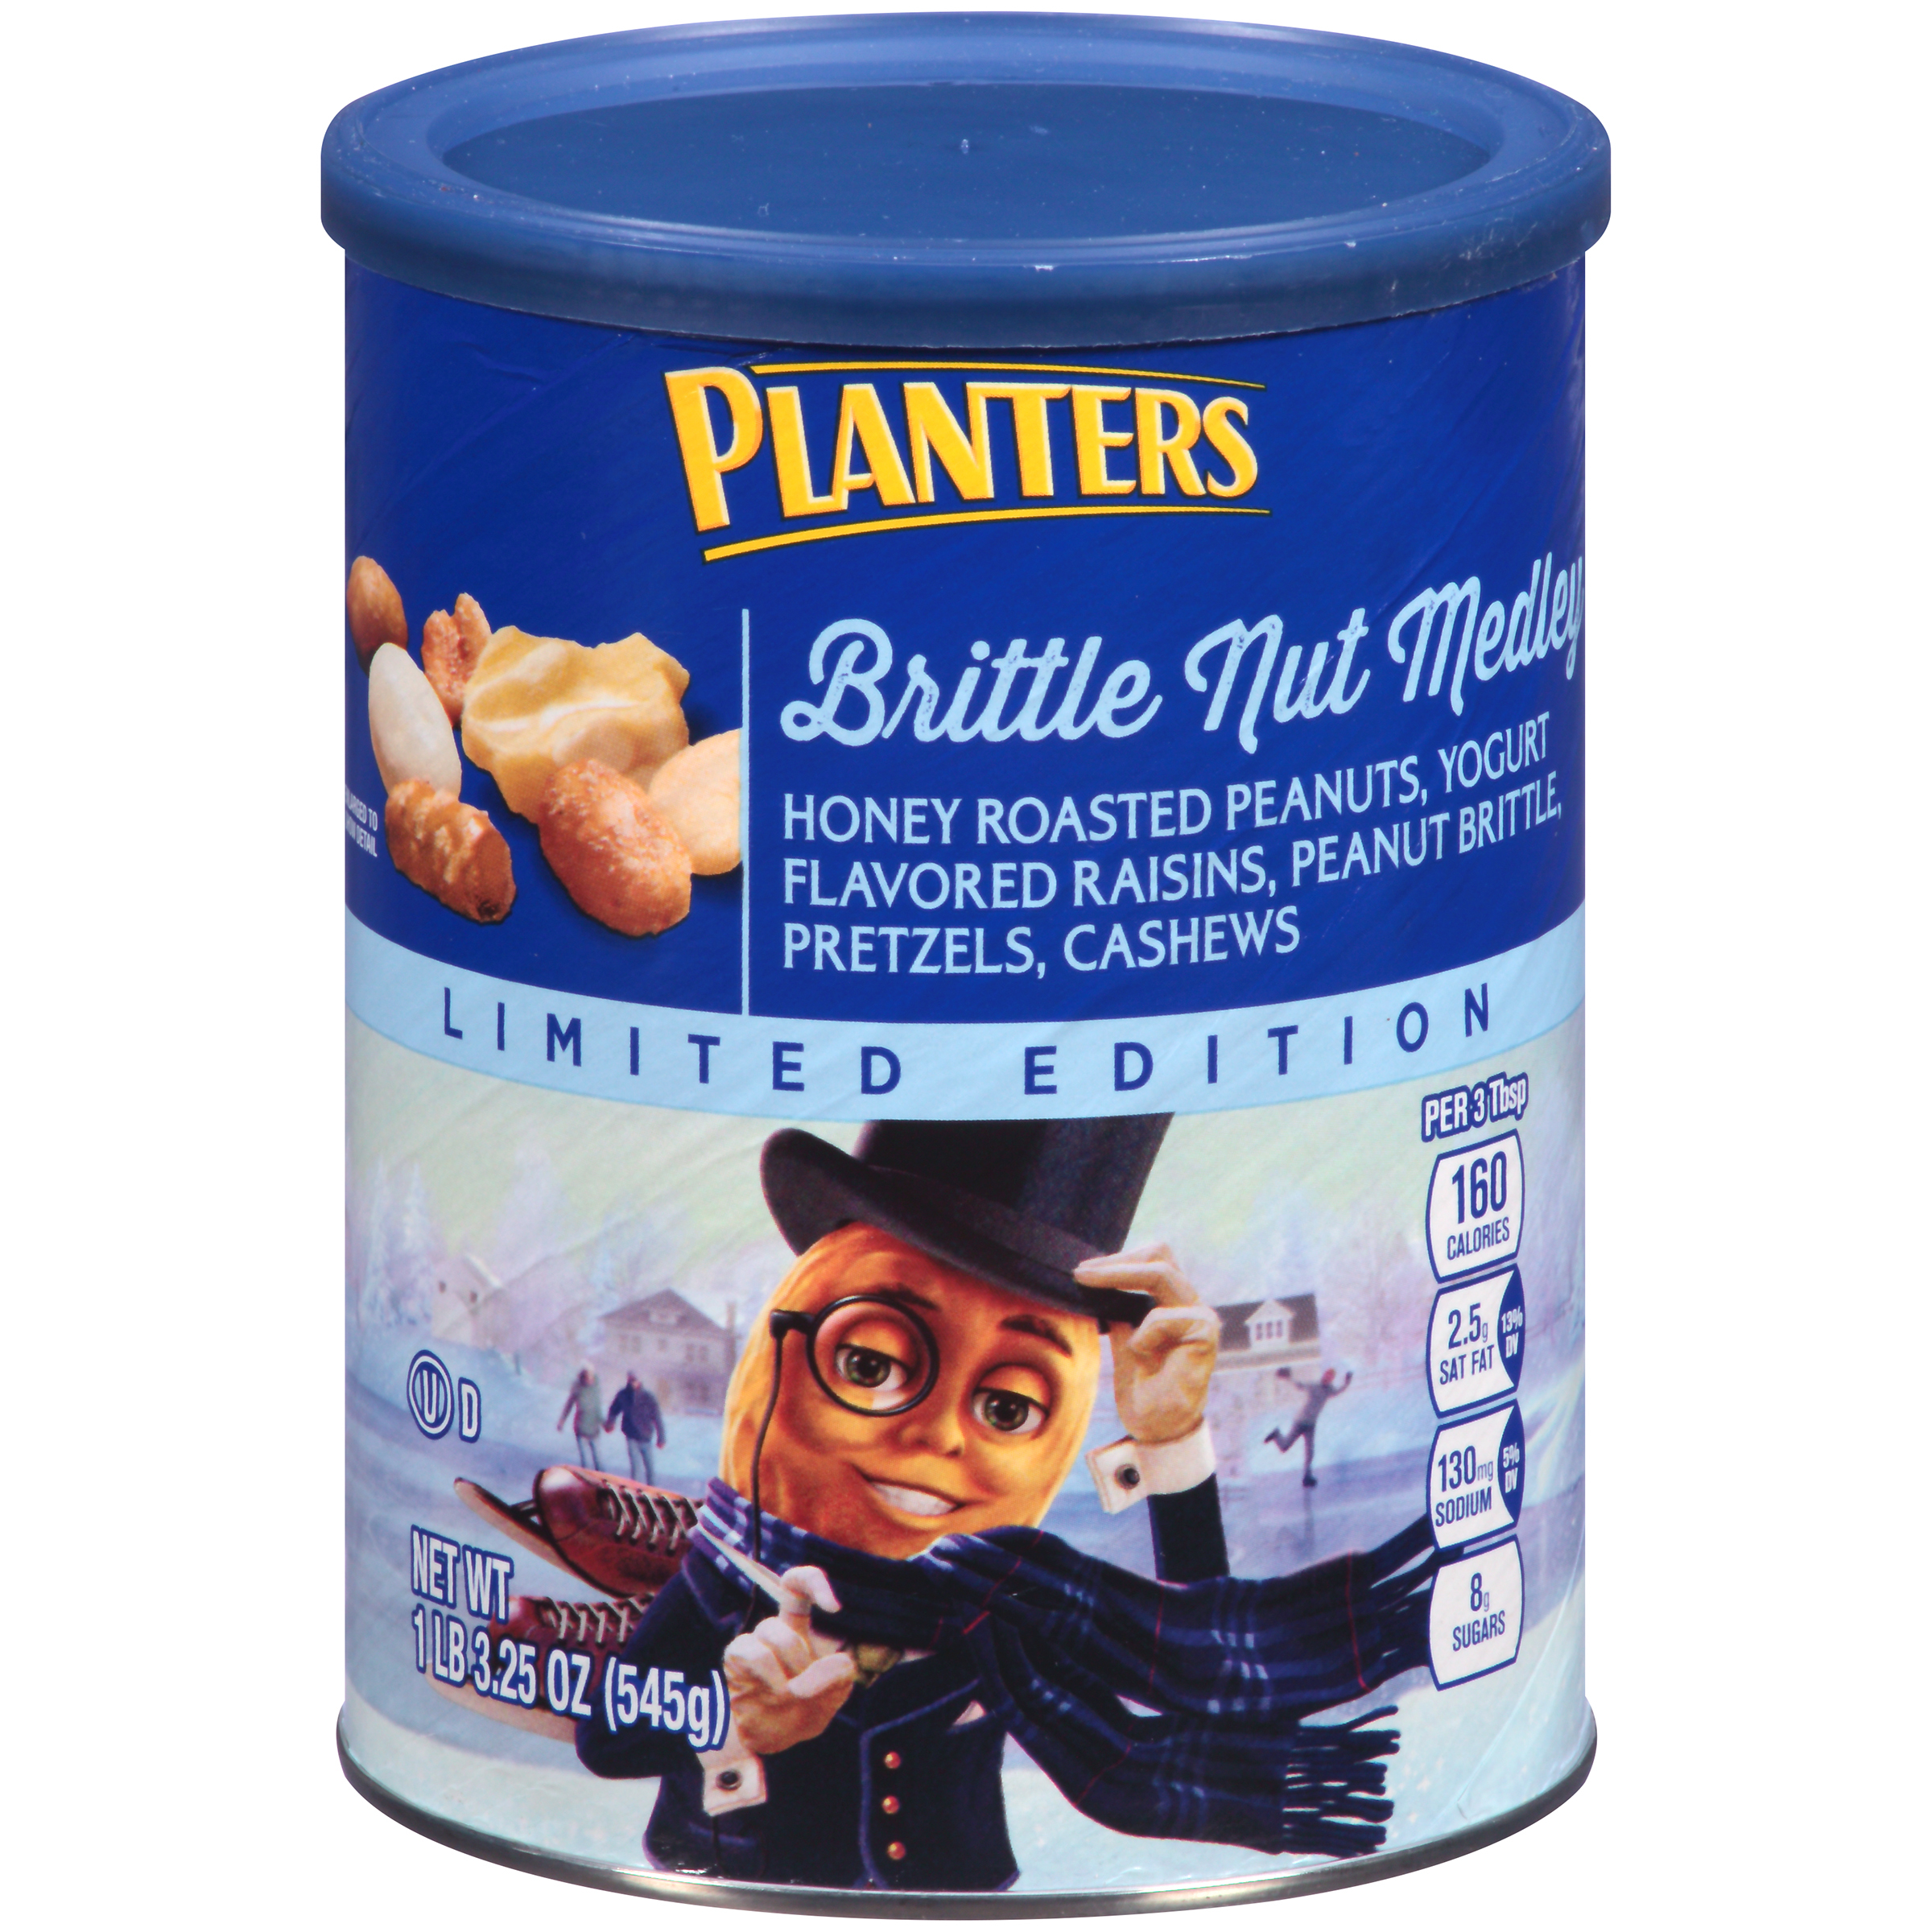 PLANTERS Brittle Nut Medley 19.25 oz Can | Planters on planters munch bar, planters holiday 3-pack, planters almond chocolate crunch, planters tailgate mix, planters pumpkin spice almonds, planters holiday mix, planters almonds seasonal winter, planters nuts gift pack, planters winter spiced nuts, planters pumpkin spiced almonds 22 5-ounce, planters spiced mix, planters nuts creme,